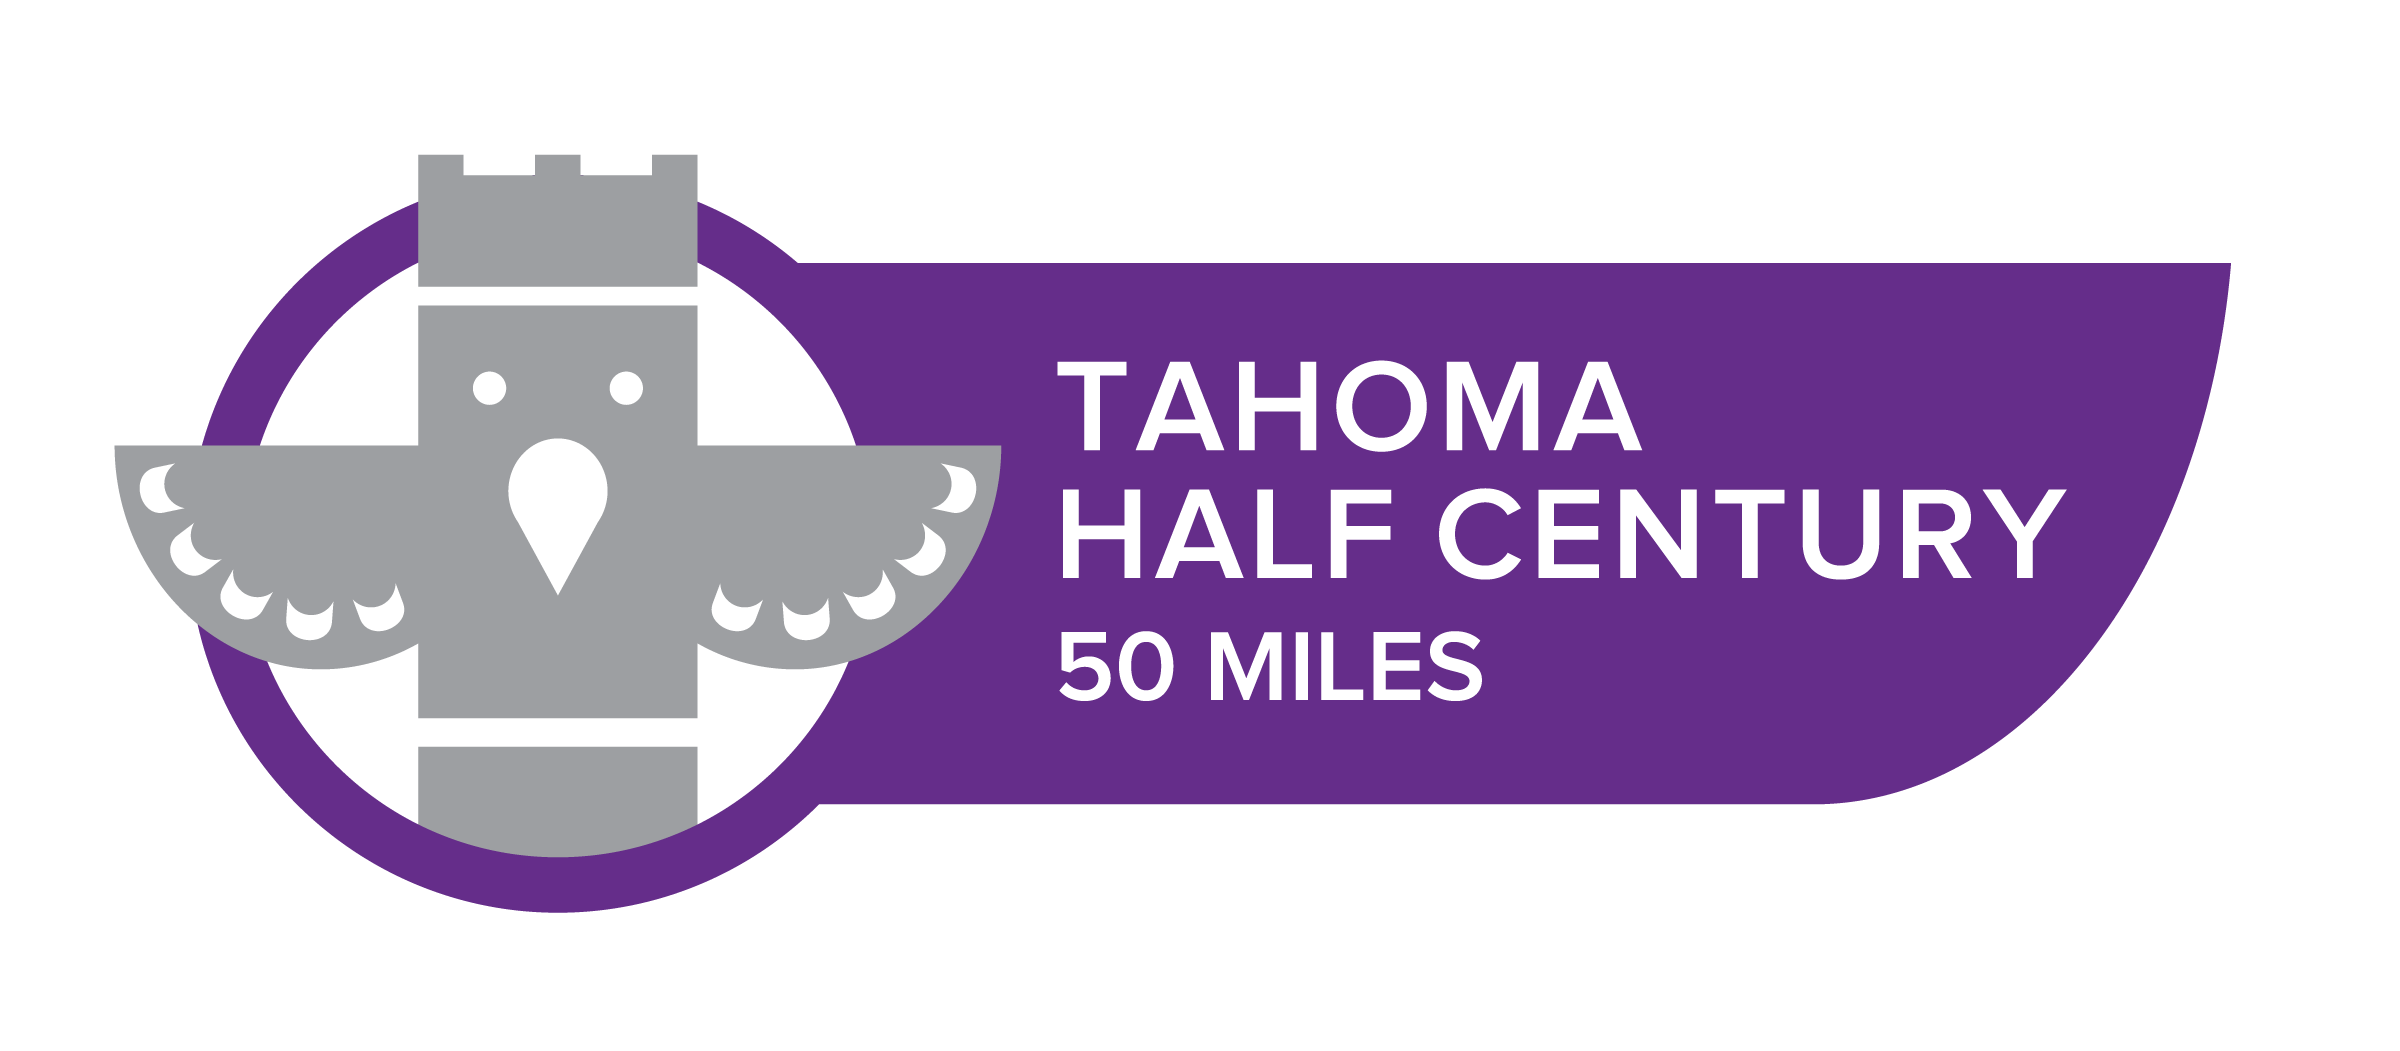 Courage tahoma feather icon